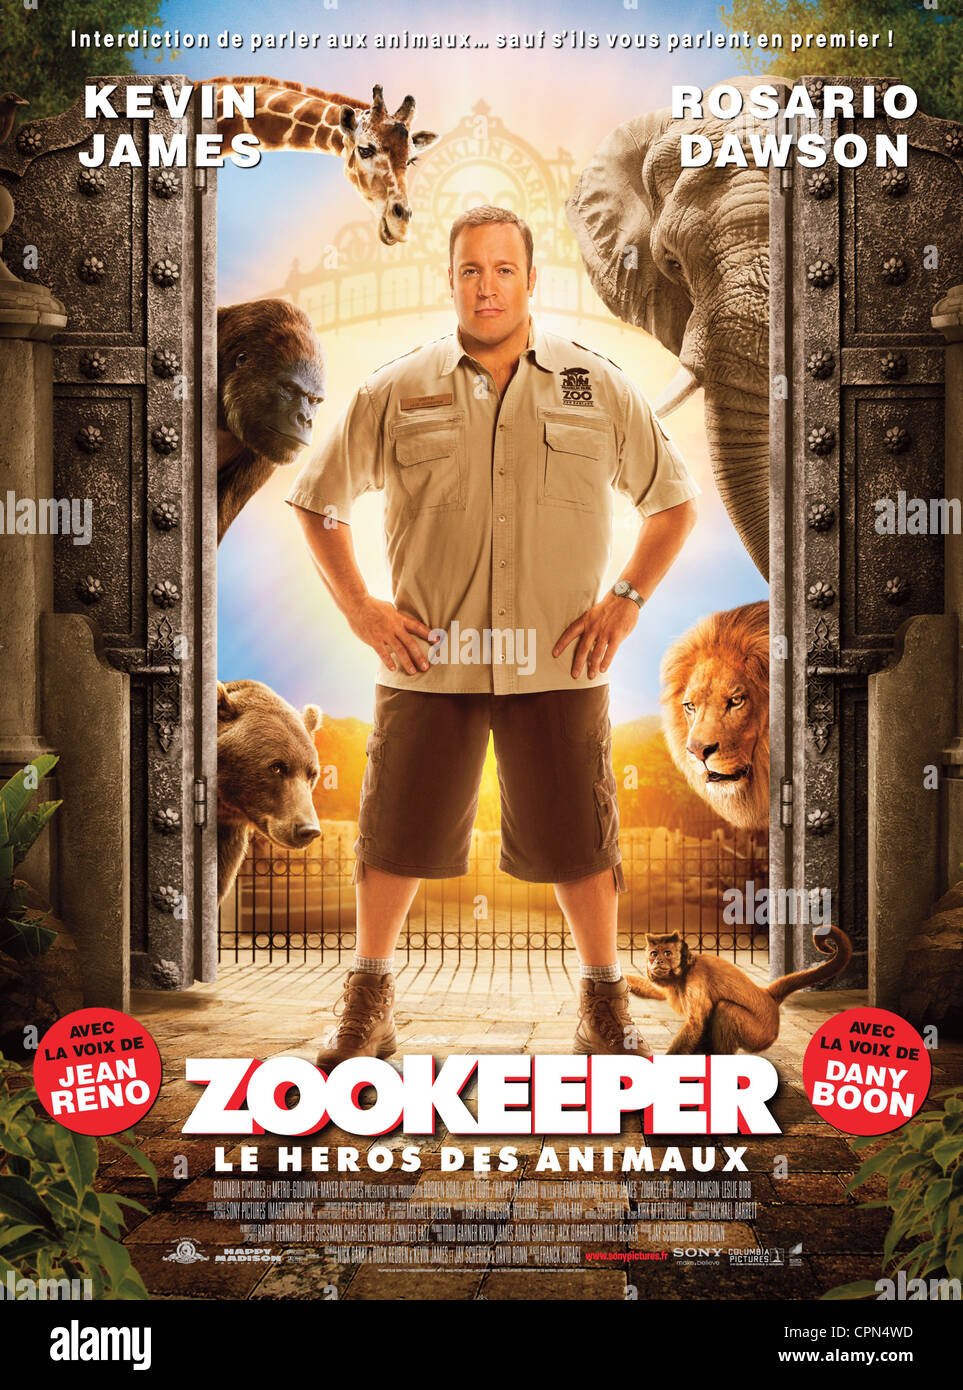 Zookeeper Movie Poster 2011 Stock Photos & Zookeeper Movie ...